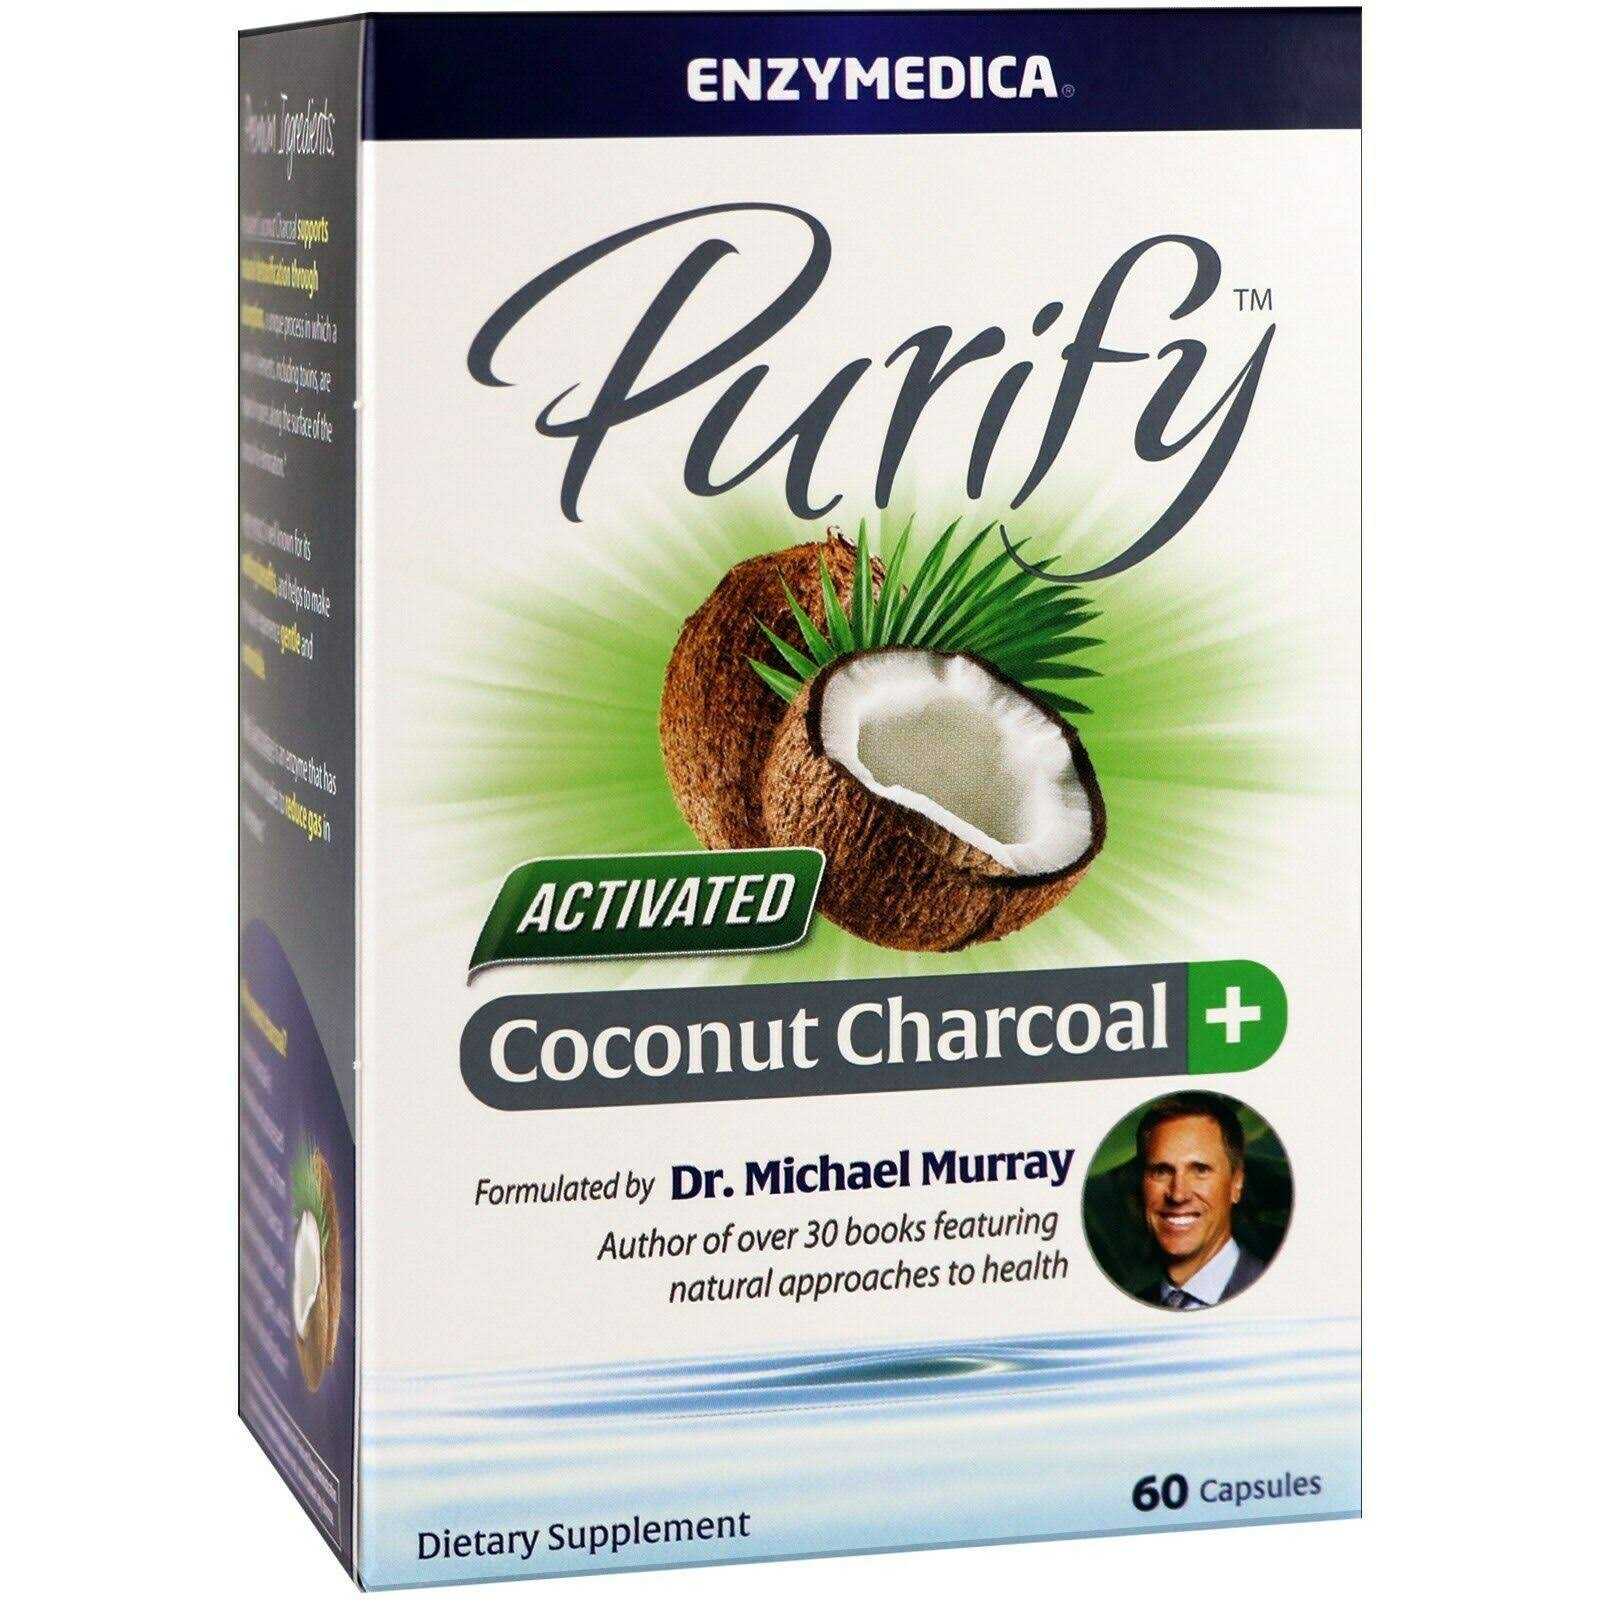 Enzymedica Purify Activated Coconut Charcoal 60 Capsules